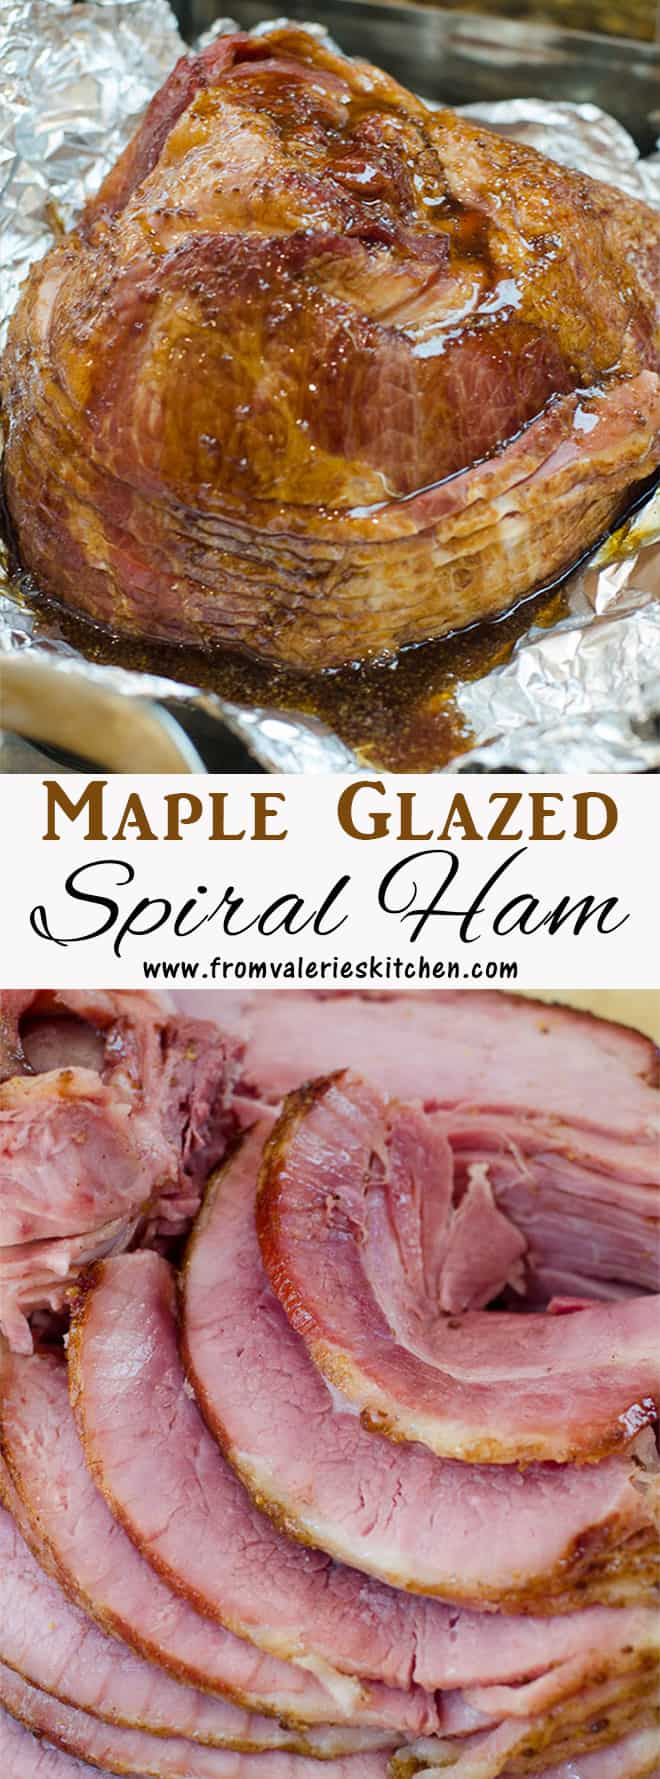 A two image vertical collage of Maple Glazed Spiral Ham with overlay text.